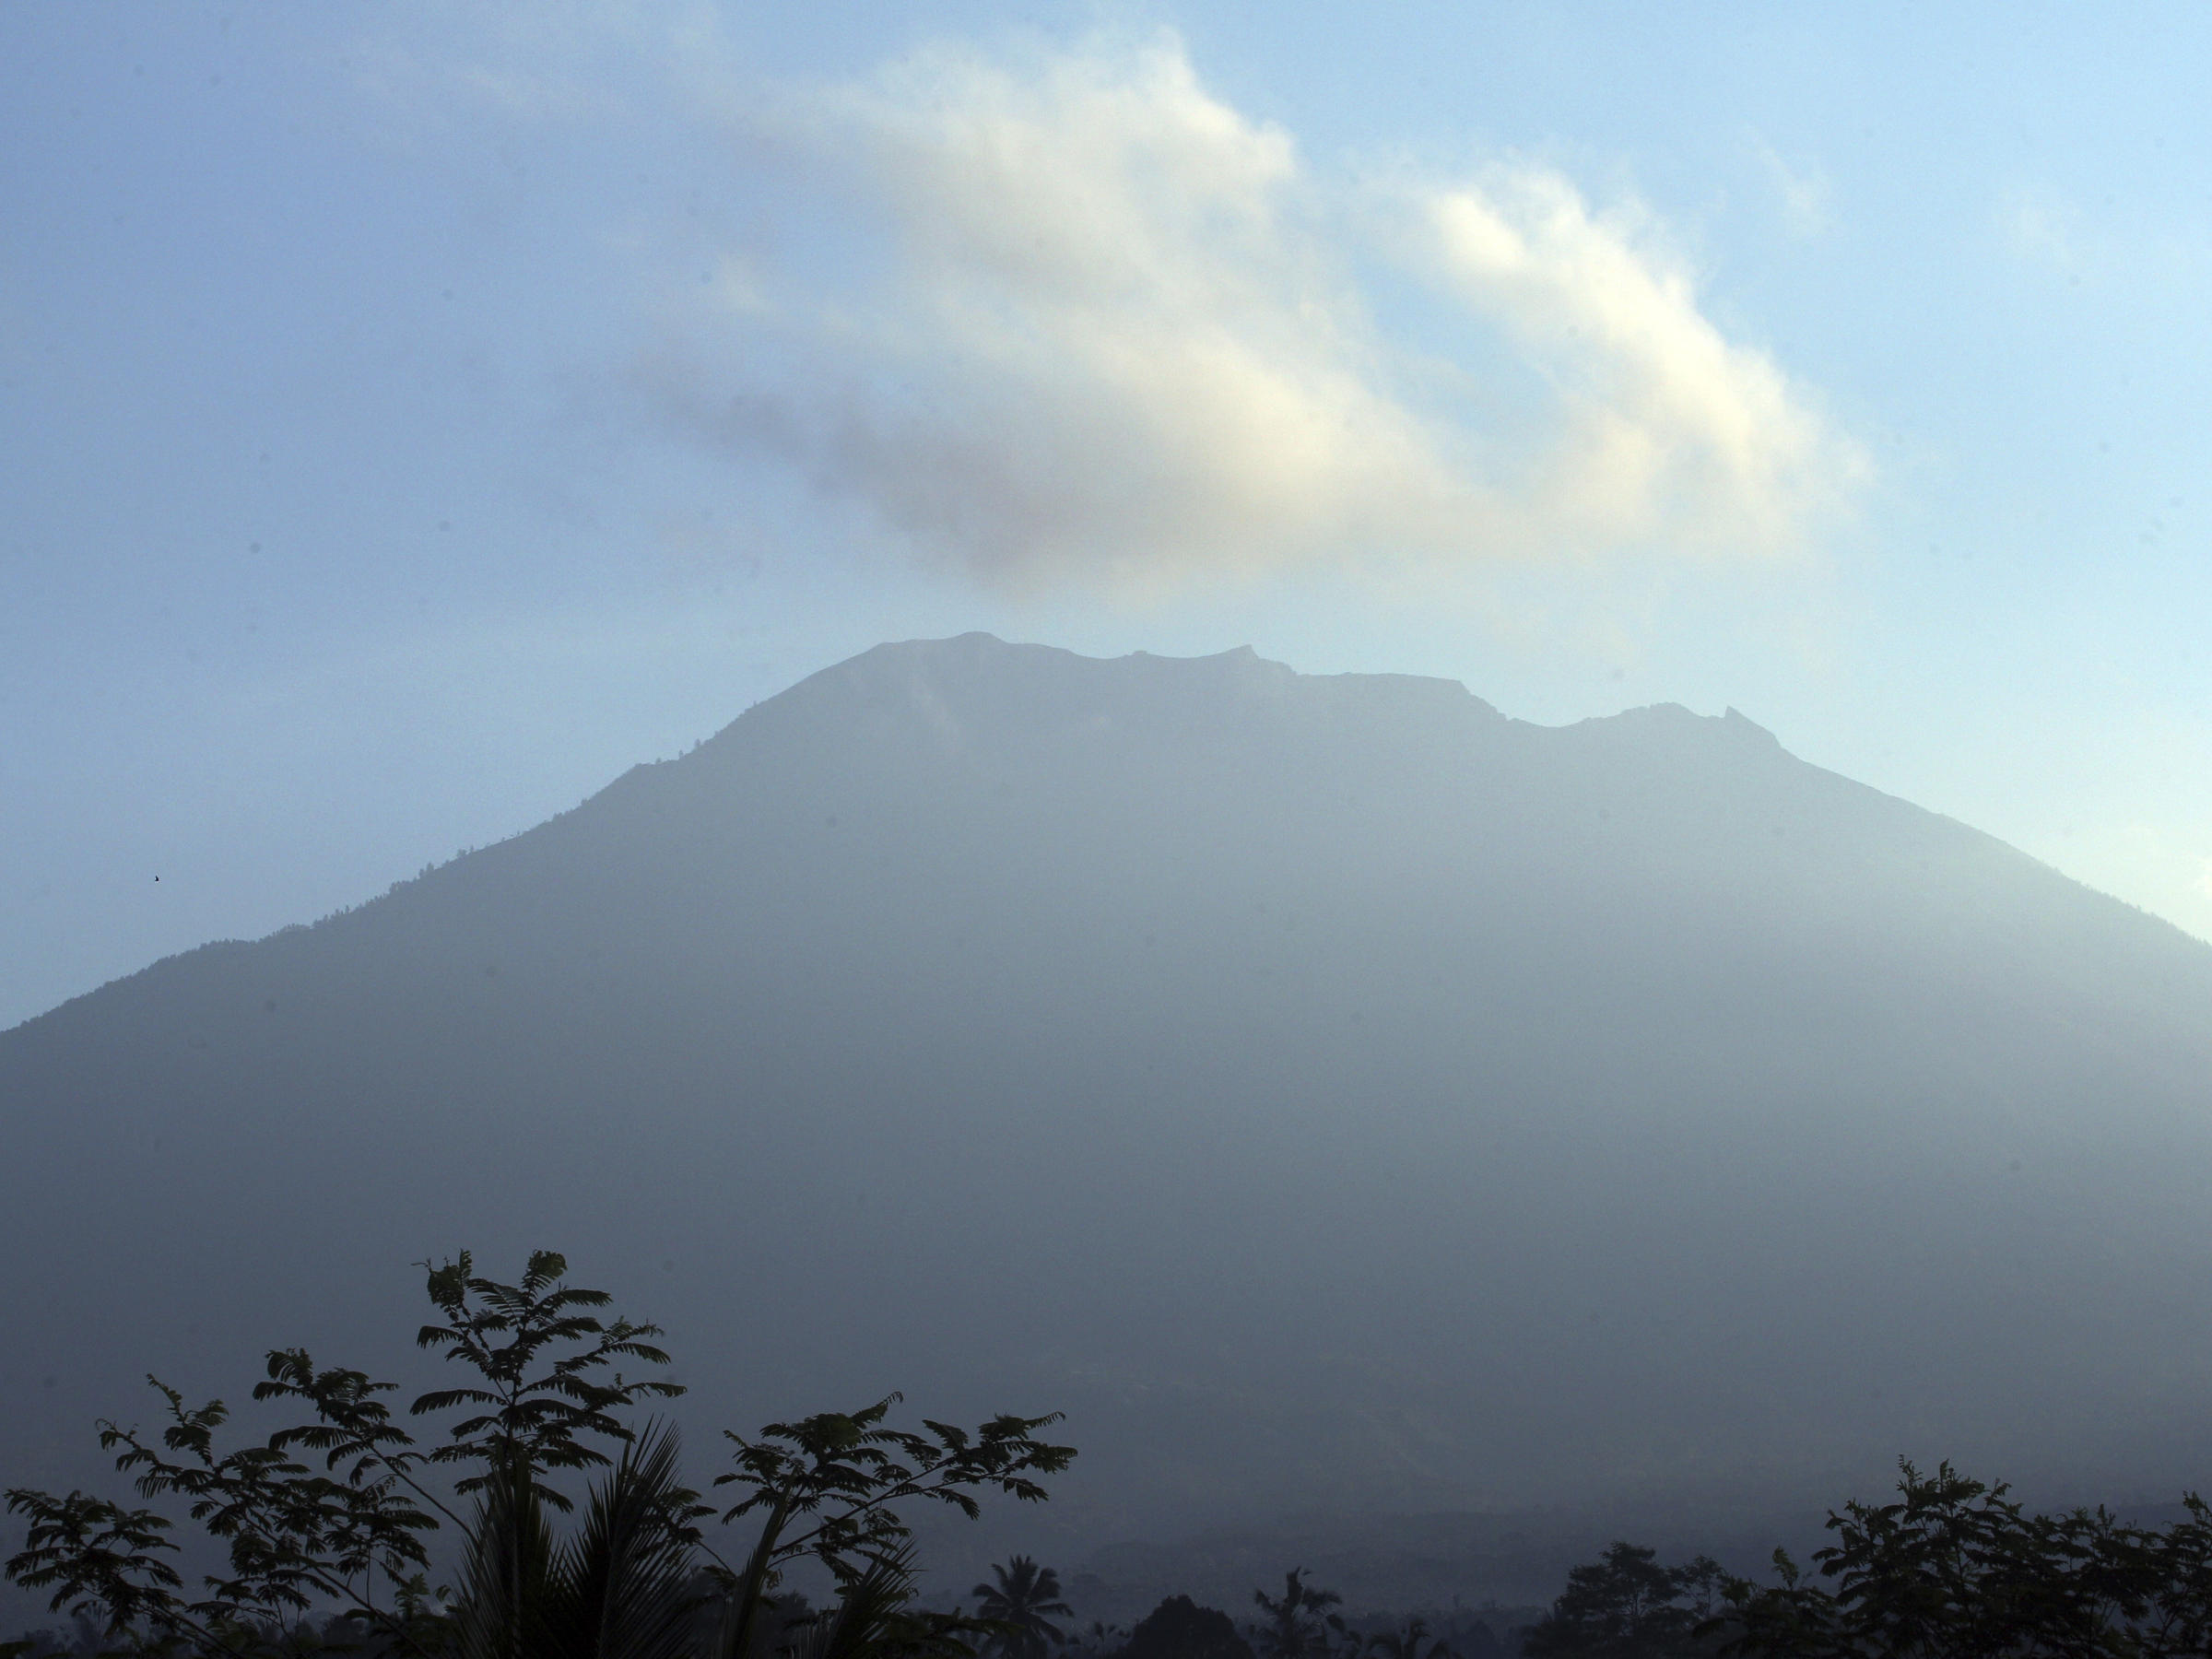 Rising Activity at Bali's Mount Agung